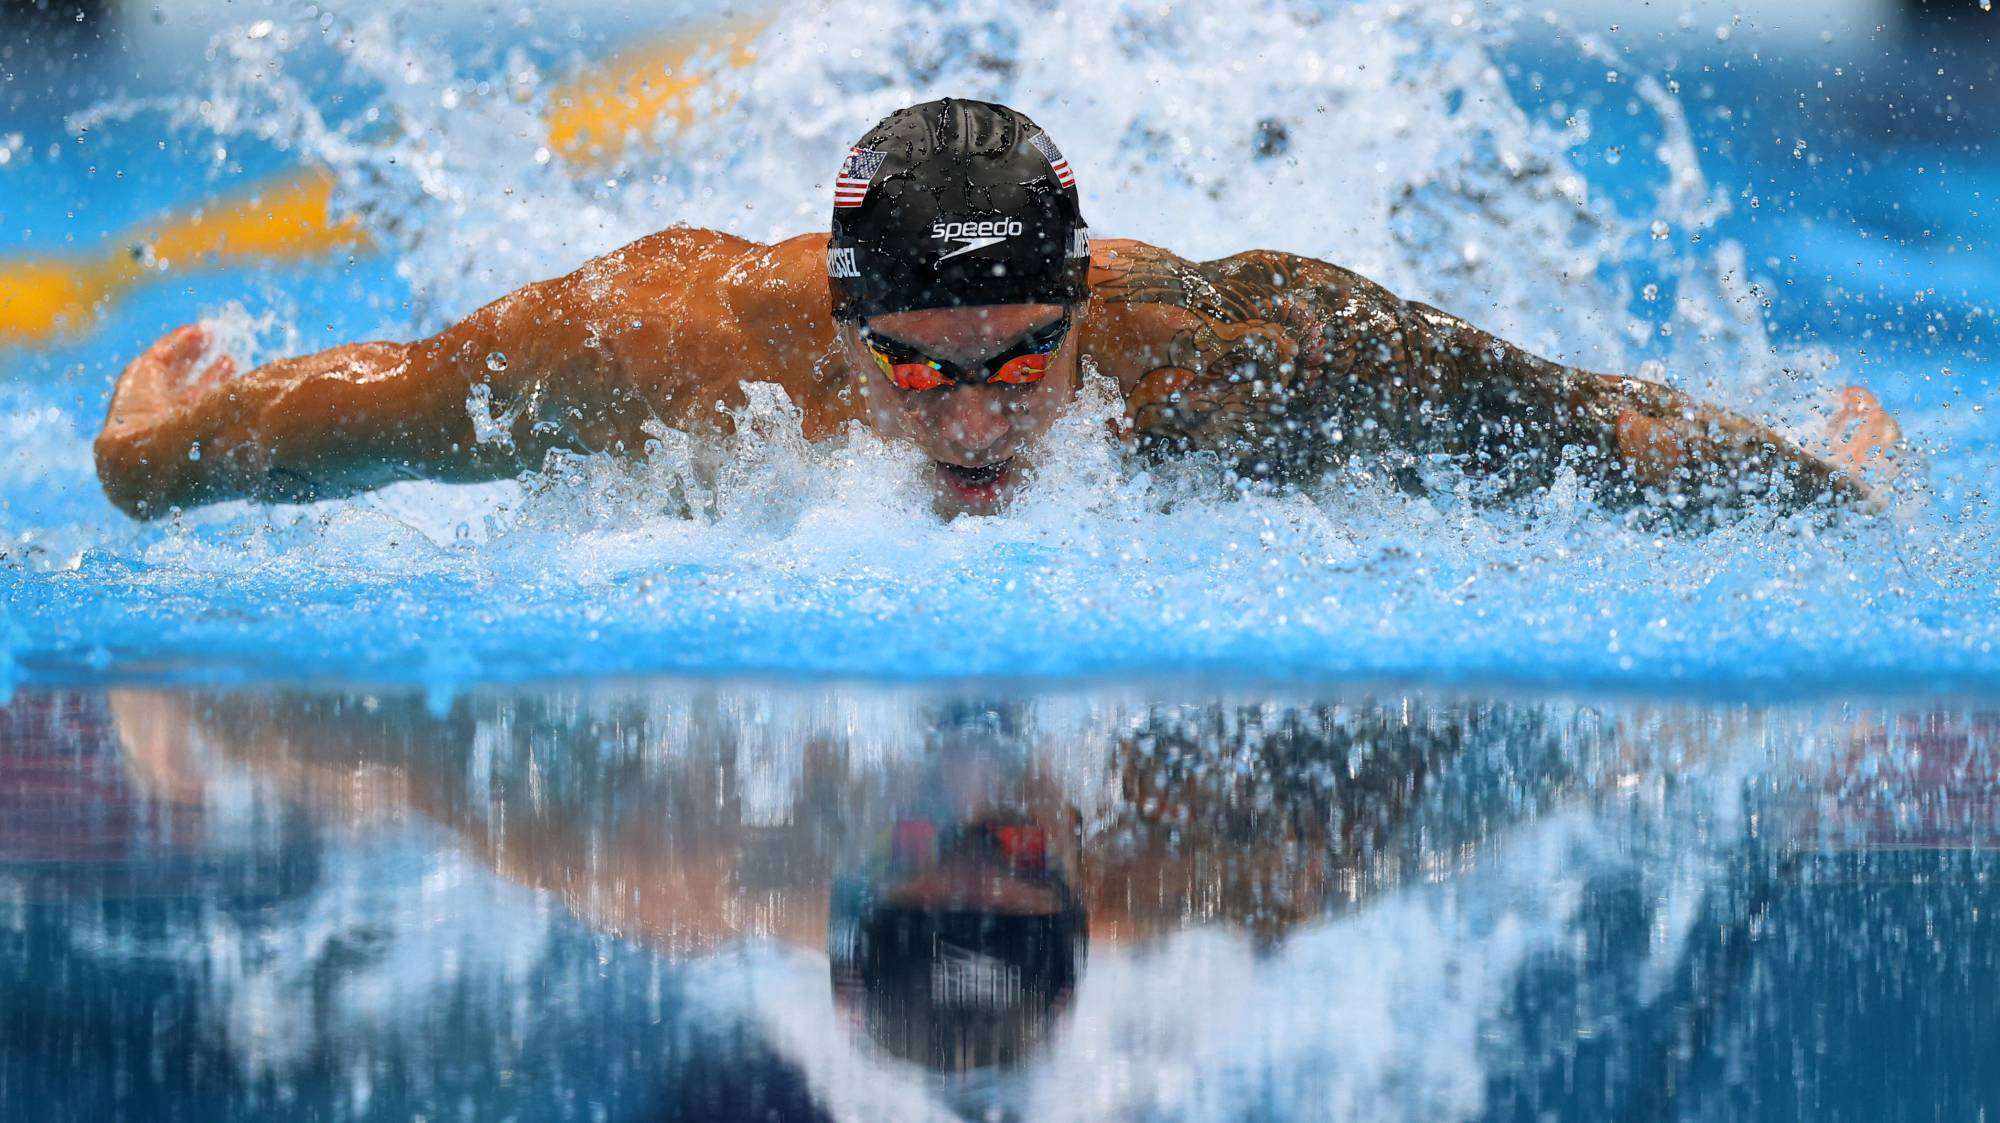 American Caeleb Dressel stormed to the men's 100 meter butterfly gold medal on Saturday with a world record time of 49.45 to pick up his second individual gold of the Tokyo Games. | REUTERS